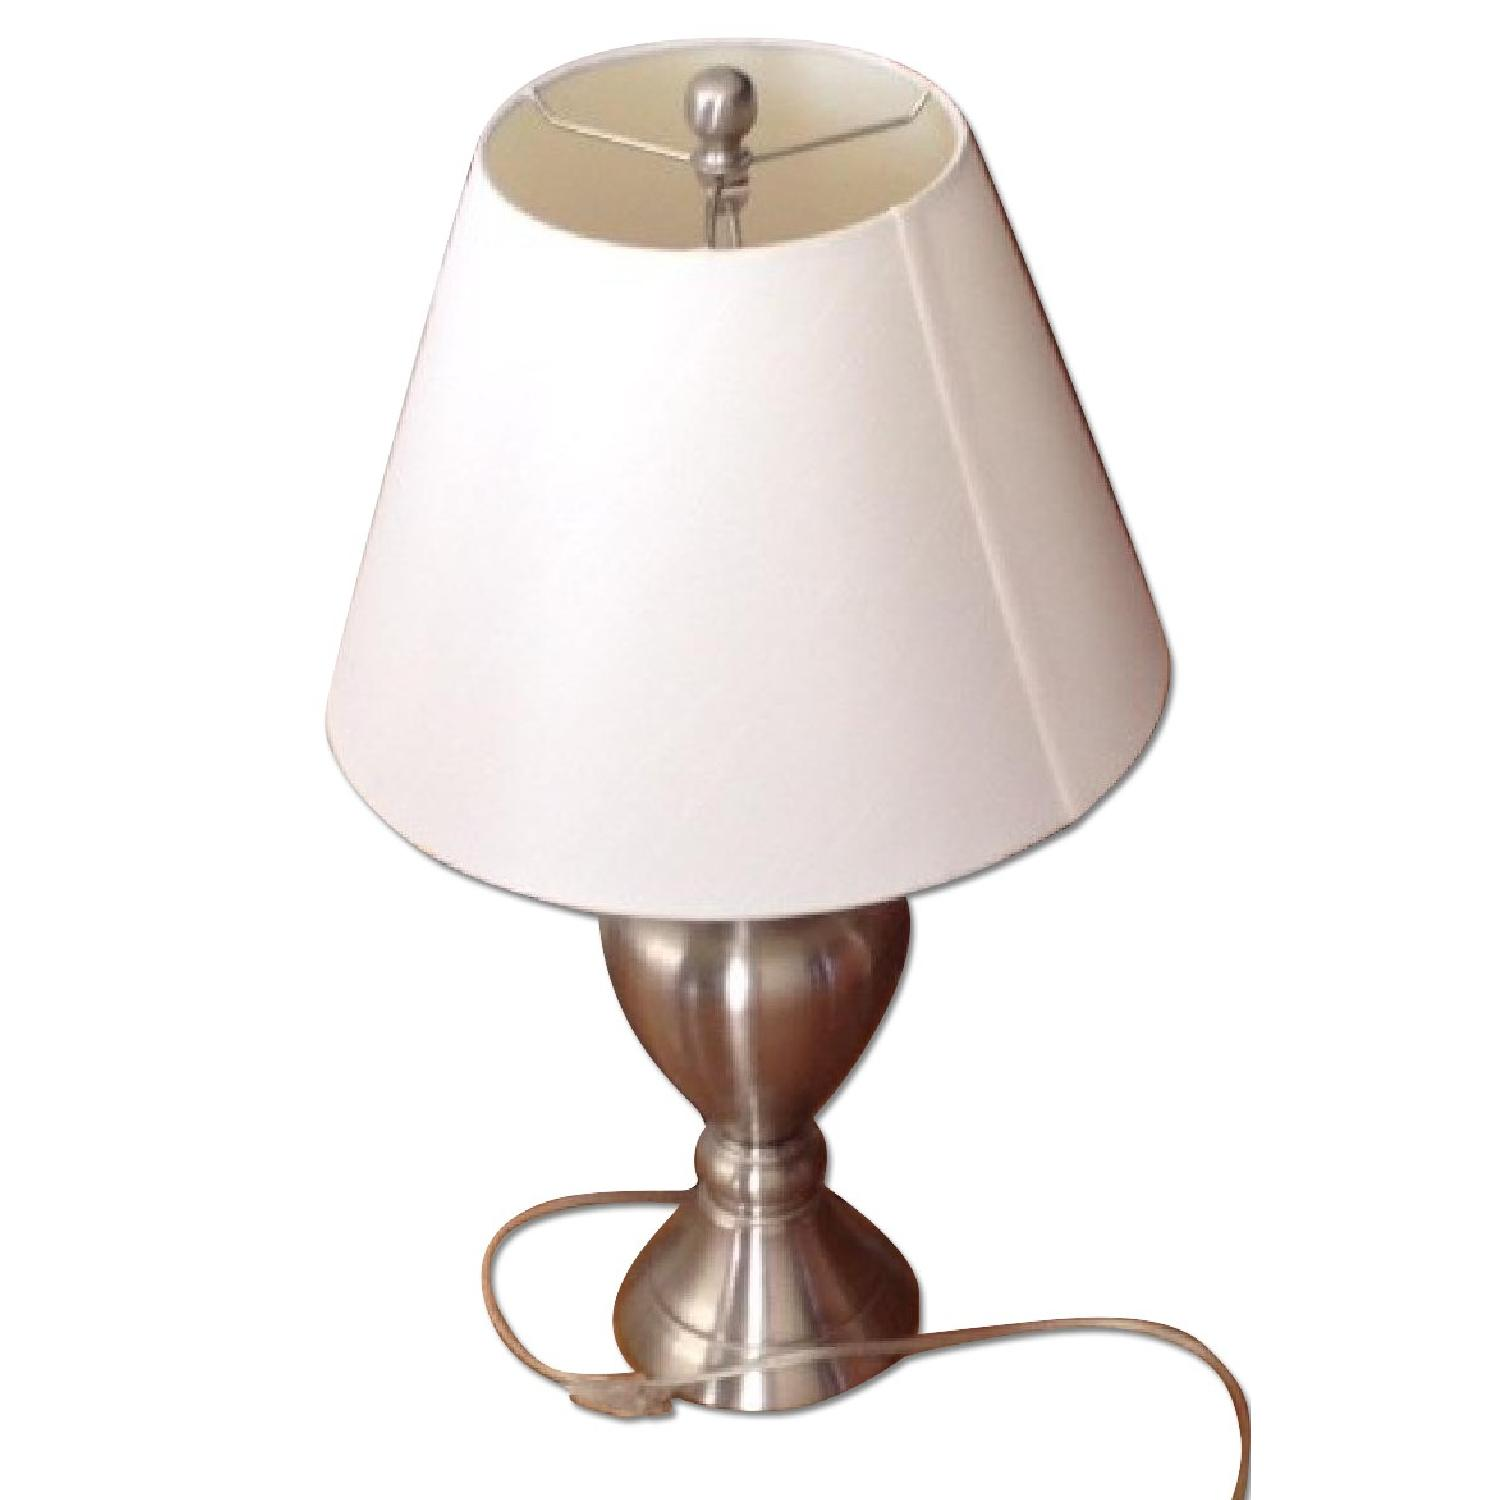 Macy's Silver Table Lamp w/ White Shade - image-2